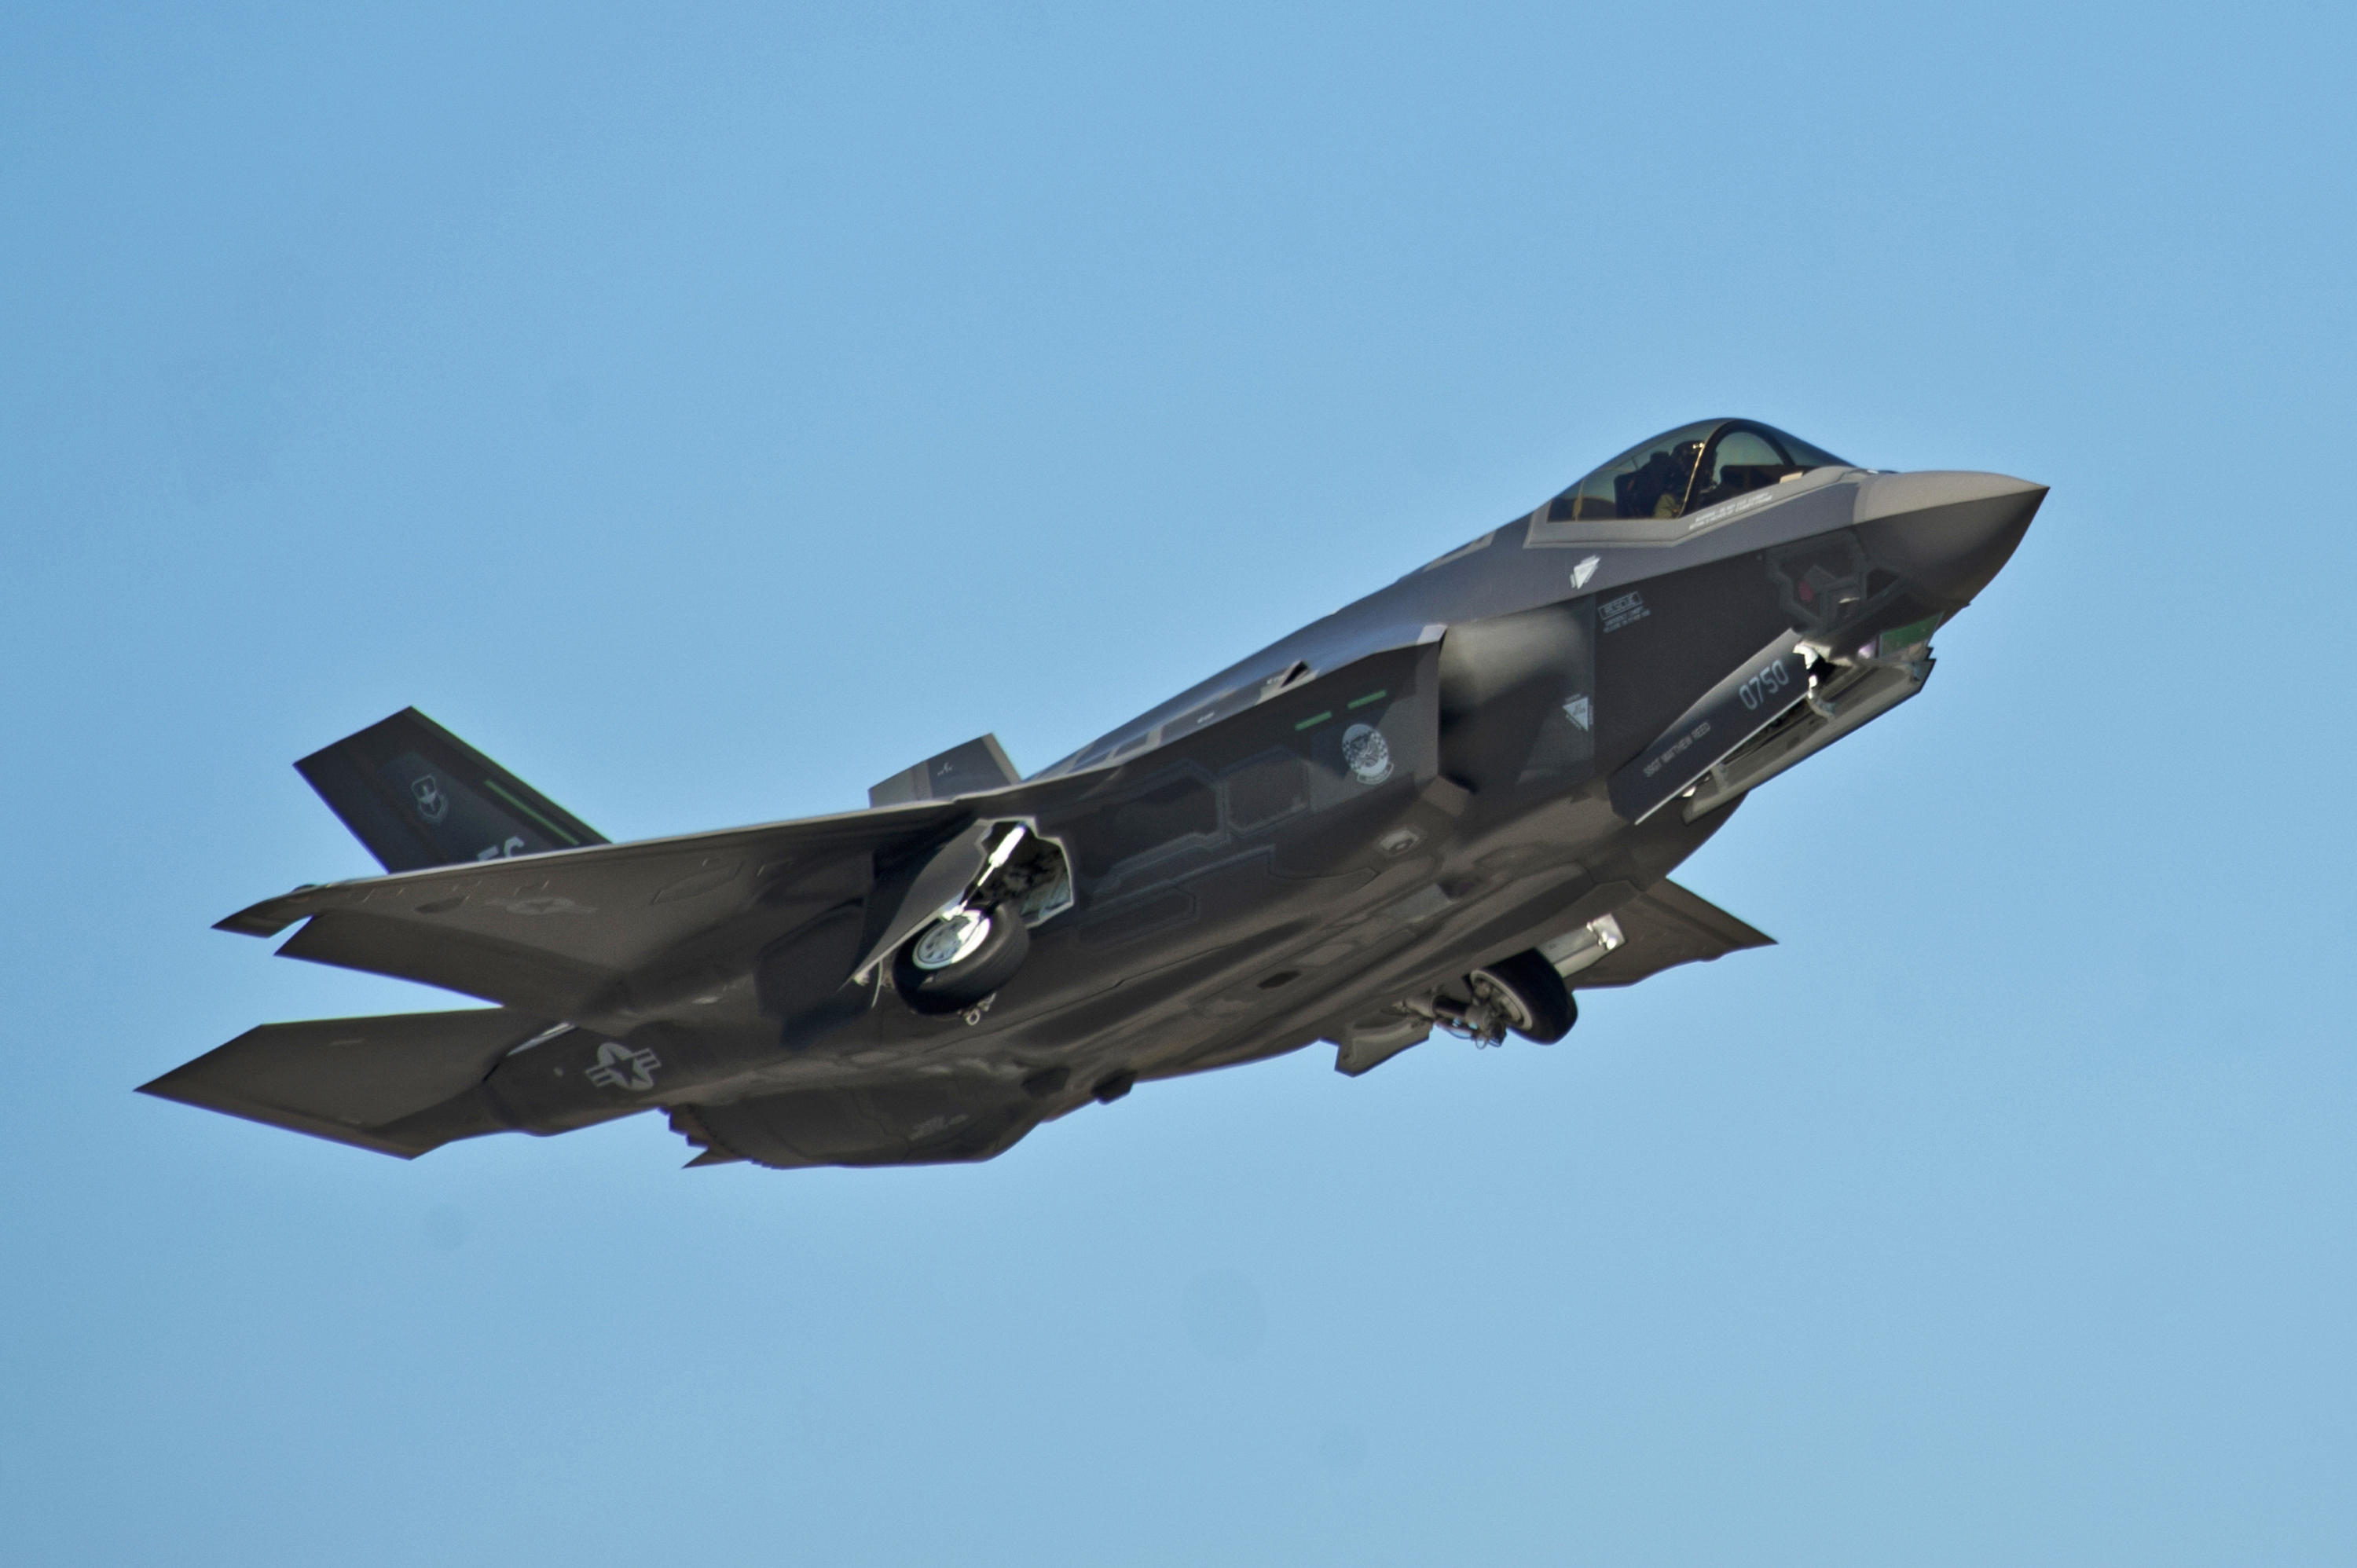 Single F-35 'kills' dozens of enemy fighters in AirWar live combat 'scenario'